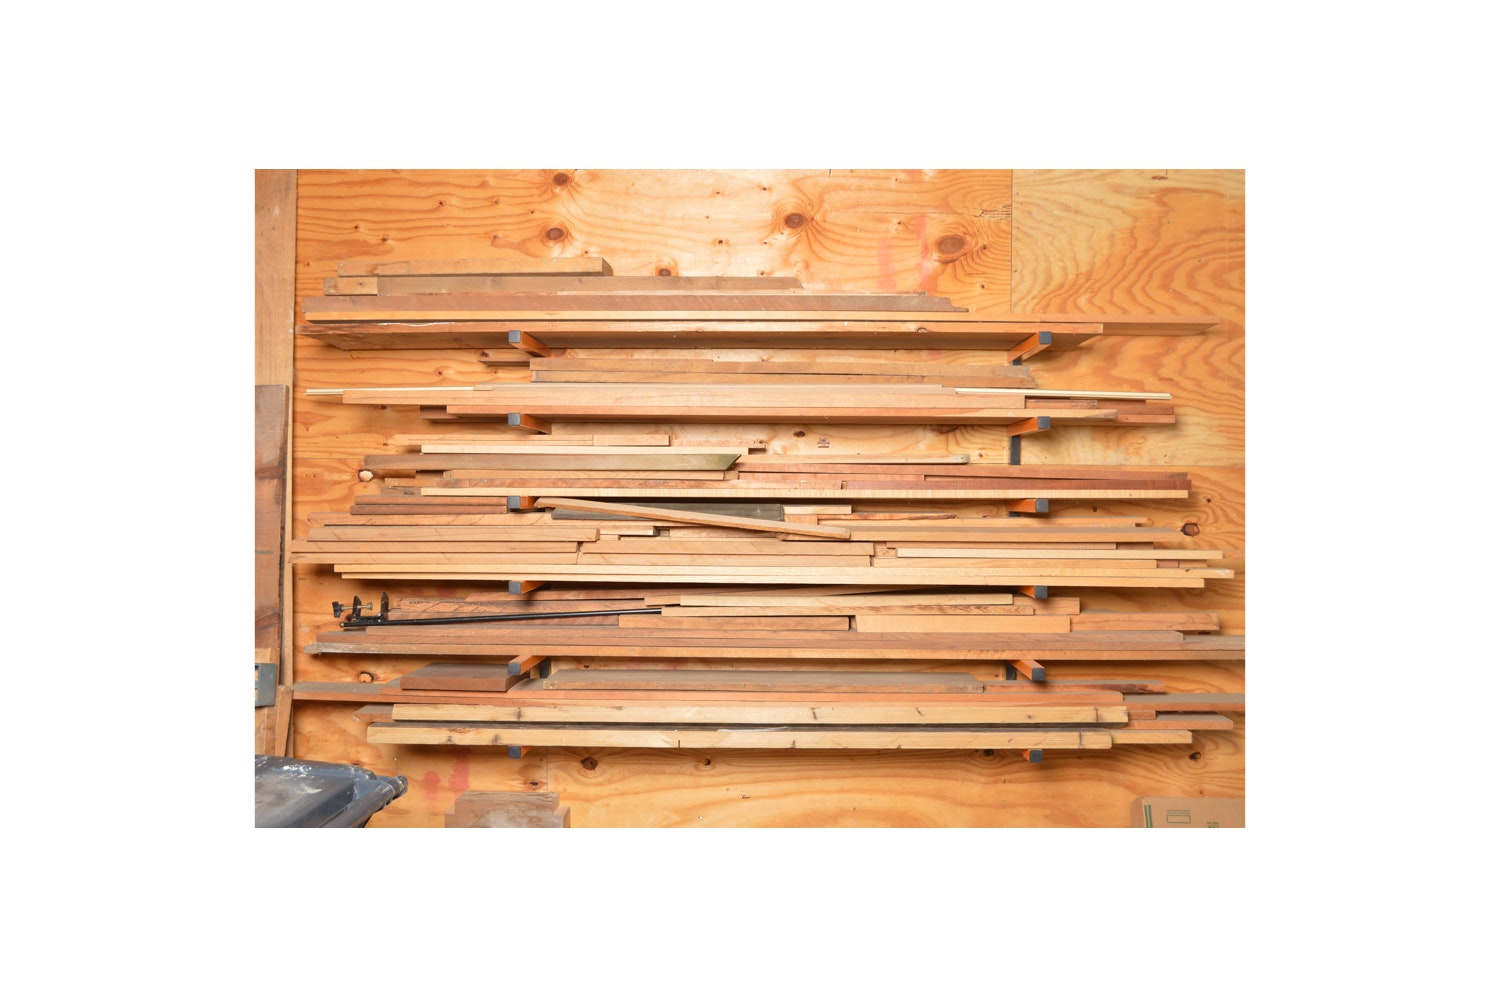 Wall-Mounting Lumber Rack with Assorted Lumber